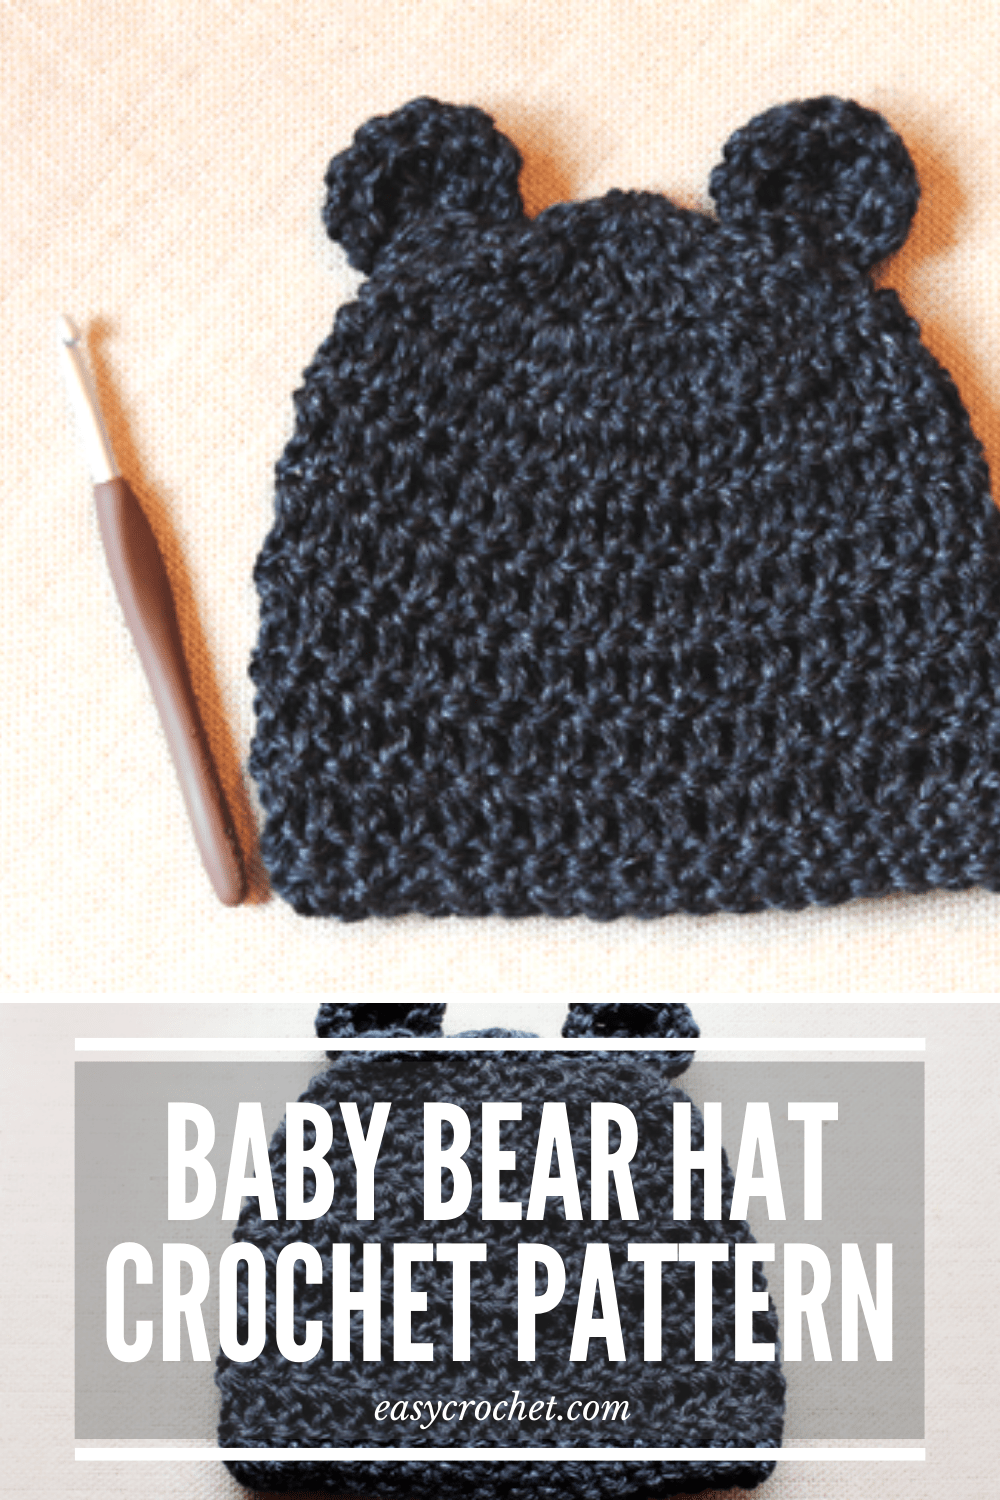 Free Baby Crochet Hat Pattern by Easy Crochet. Make this cute baby bear hat for a newborn baby! via @easycrochetcom